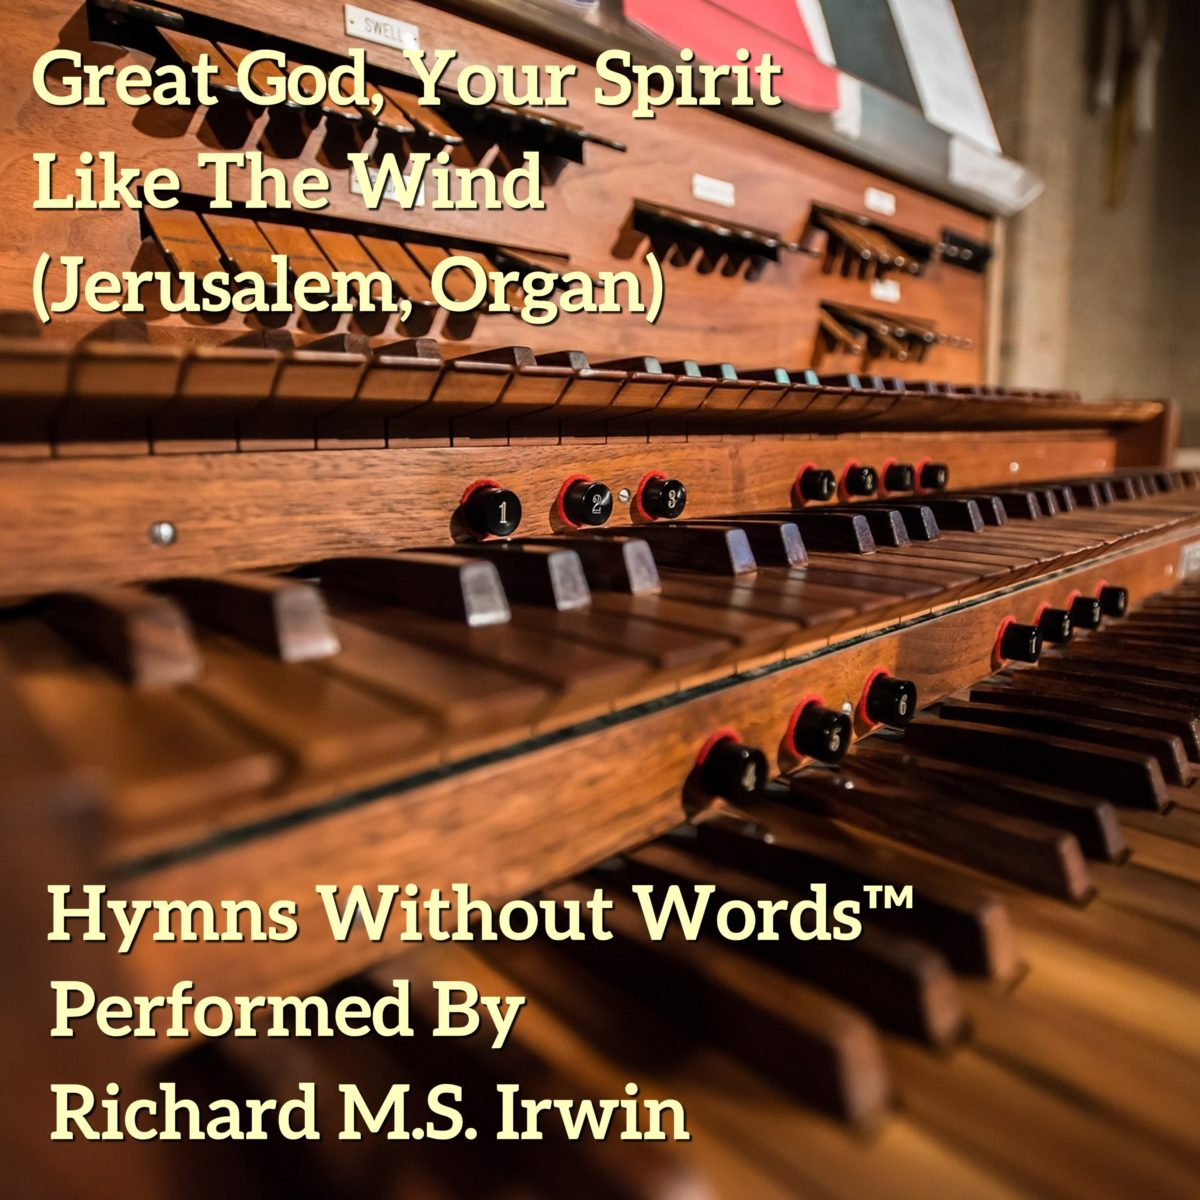 Great God Your Spirit Like The Wind (Jerusalem, Organ, 3 Verses)